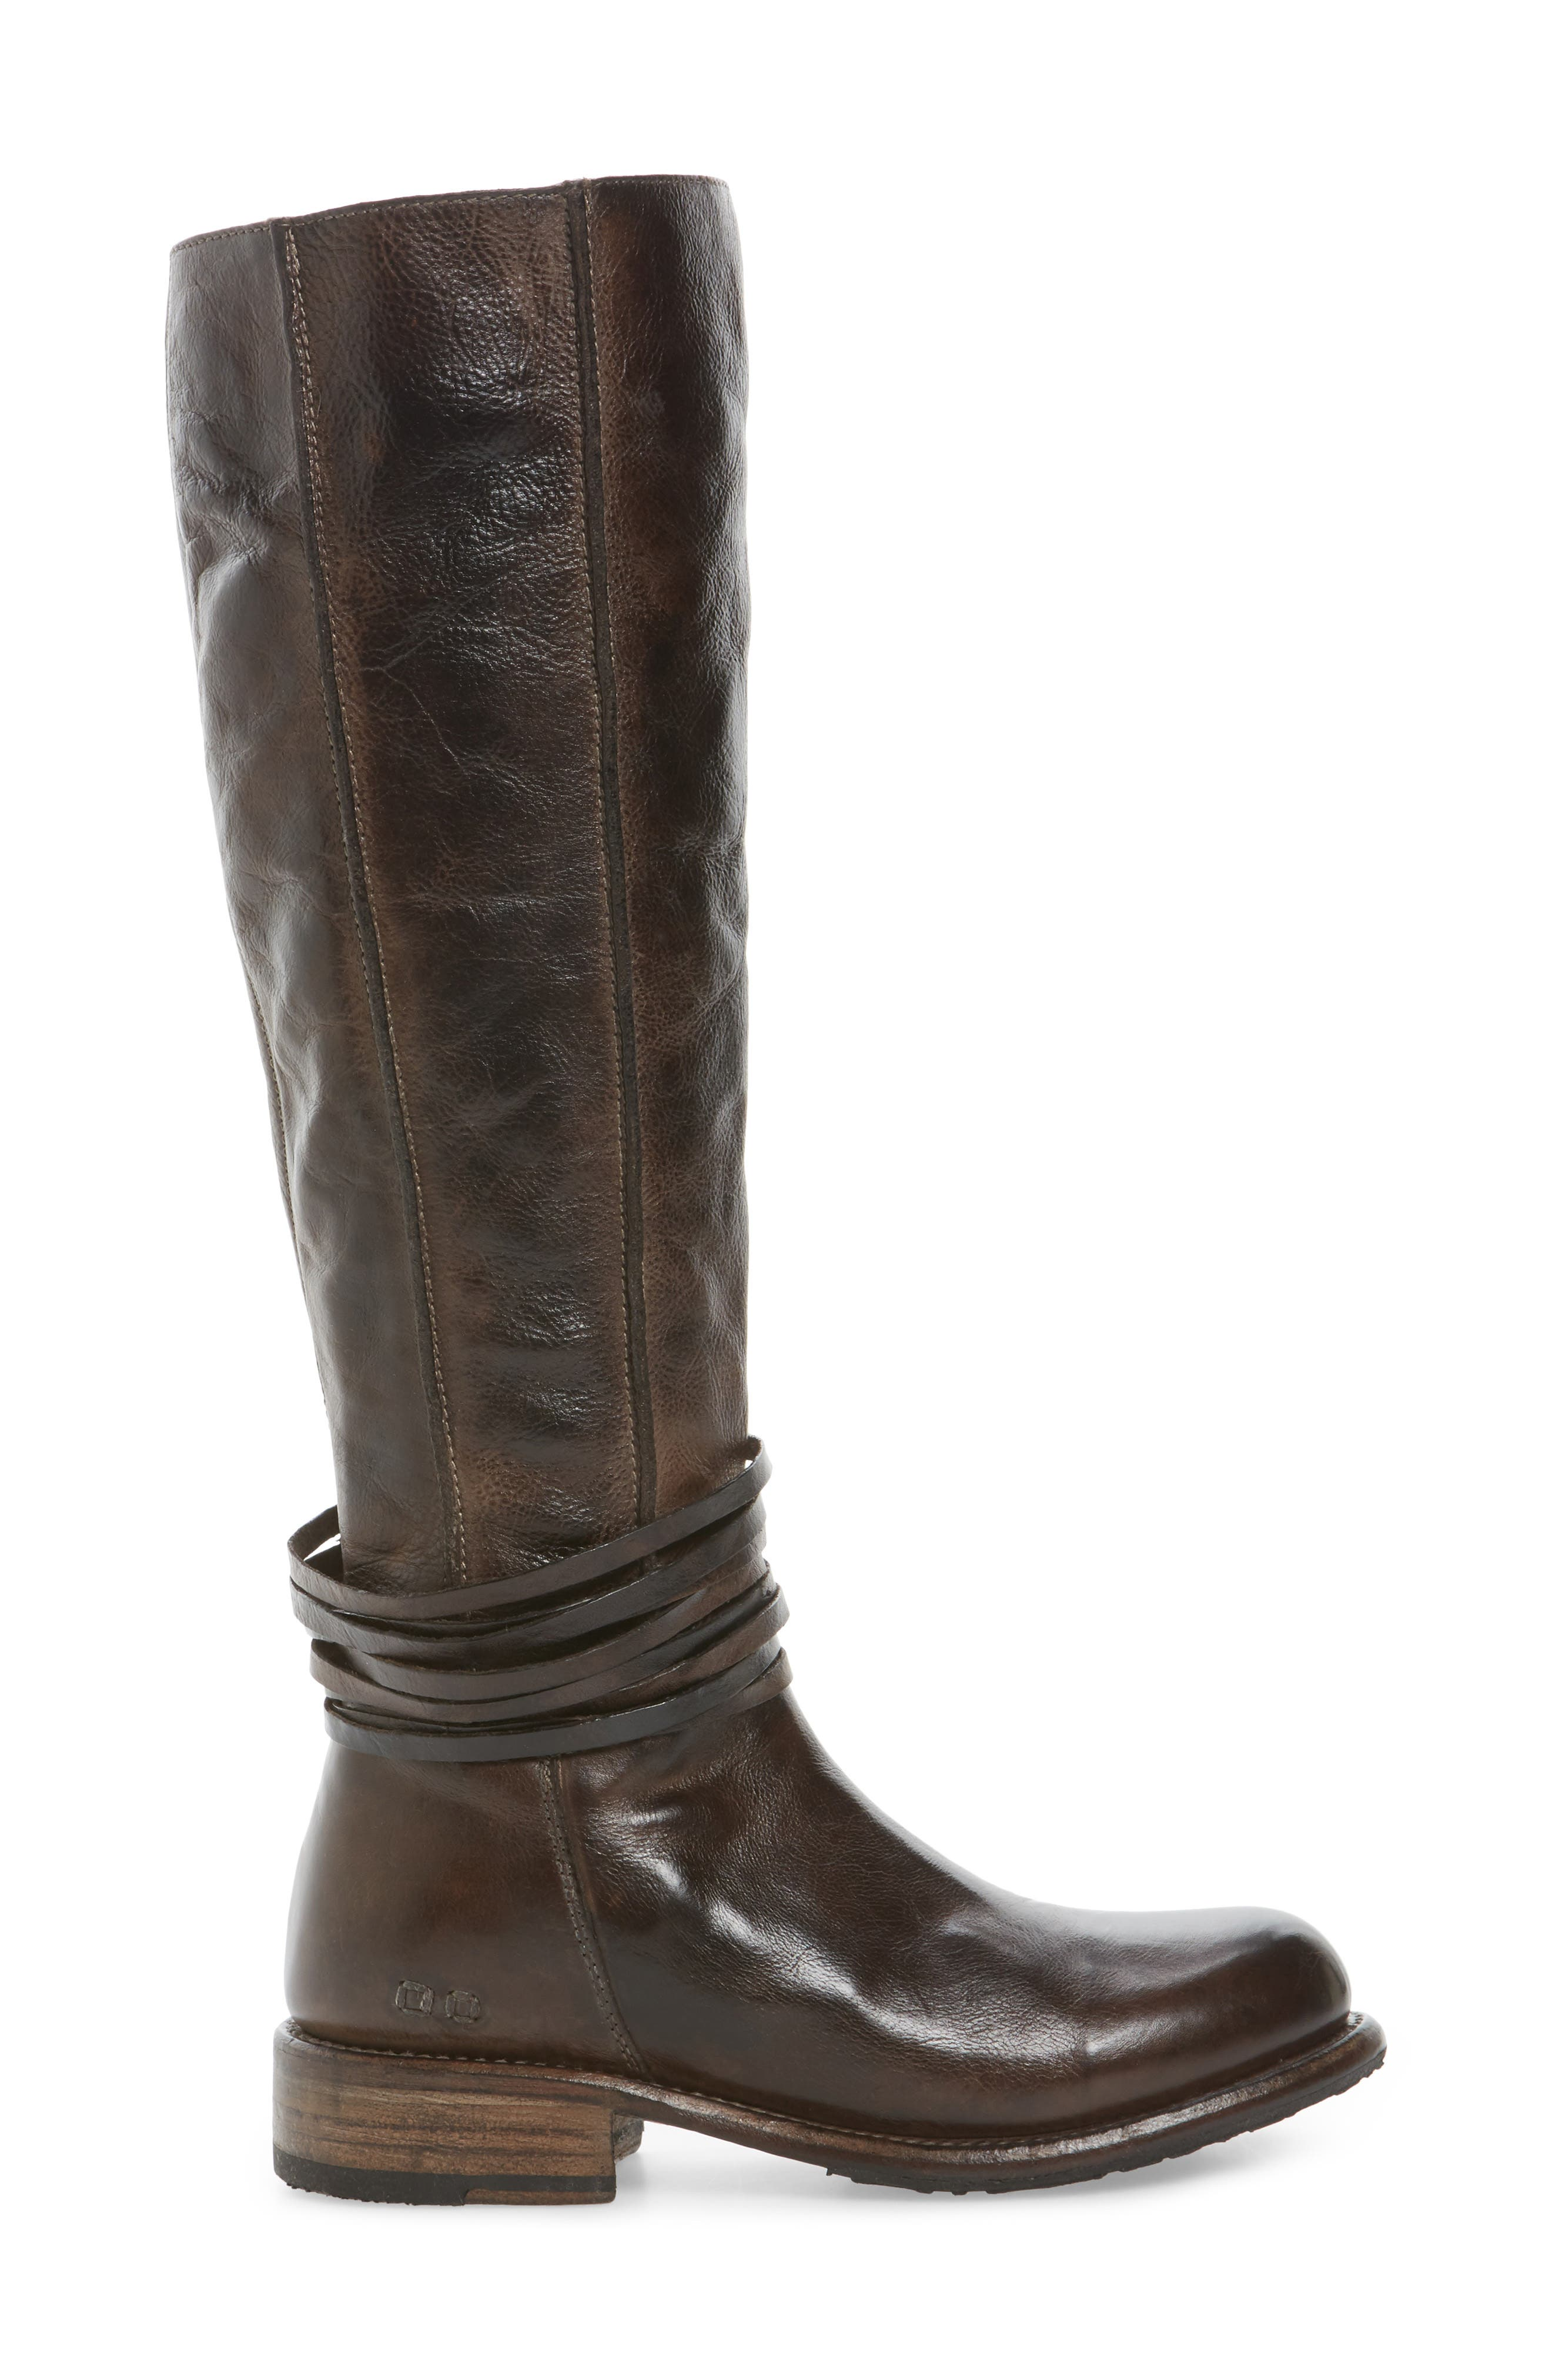 Weymouth Knee High Boot,                             Alternate thumbnail 3, color,                             200